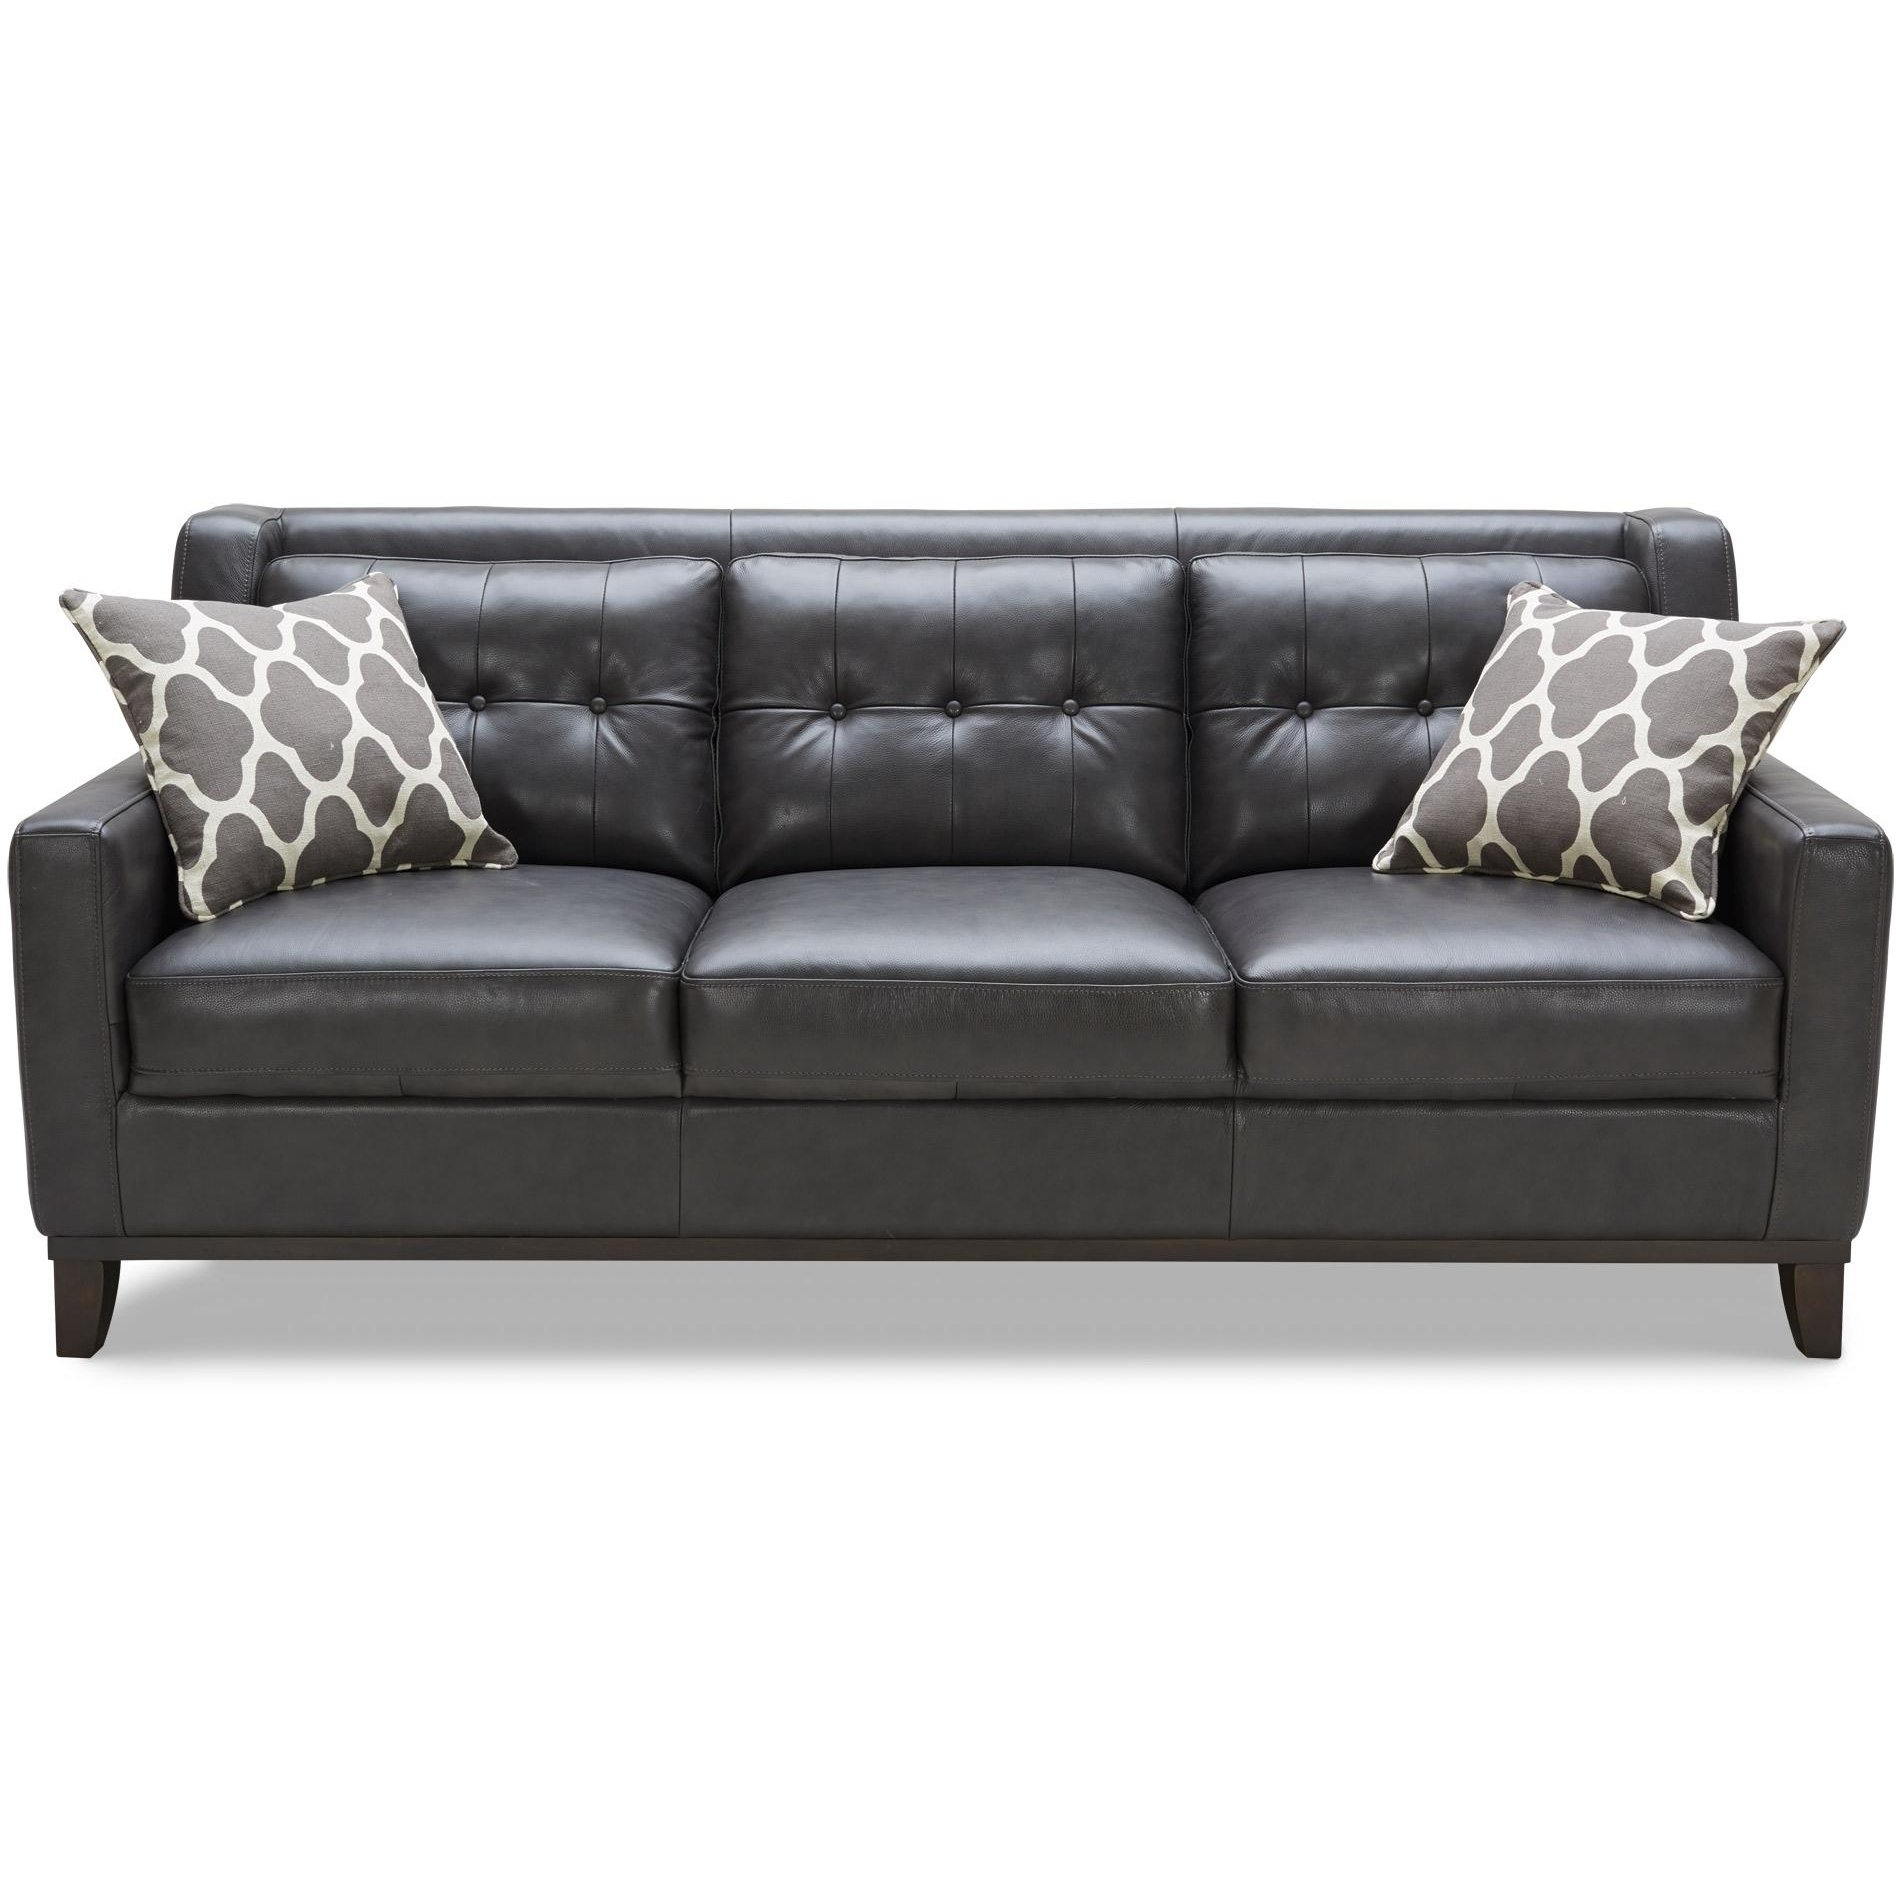 ... Contemporary Charcoal Leather Sofa   Nigel